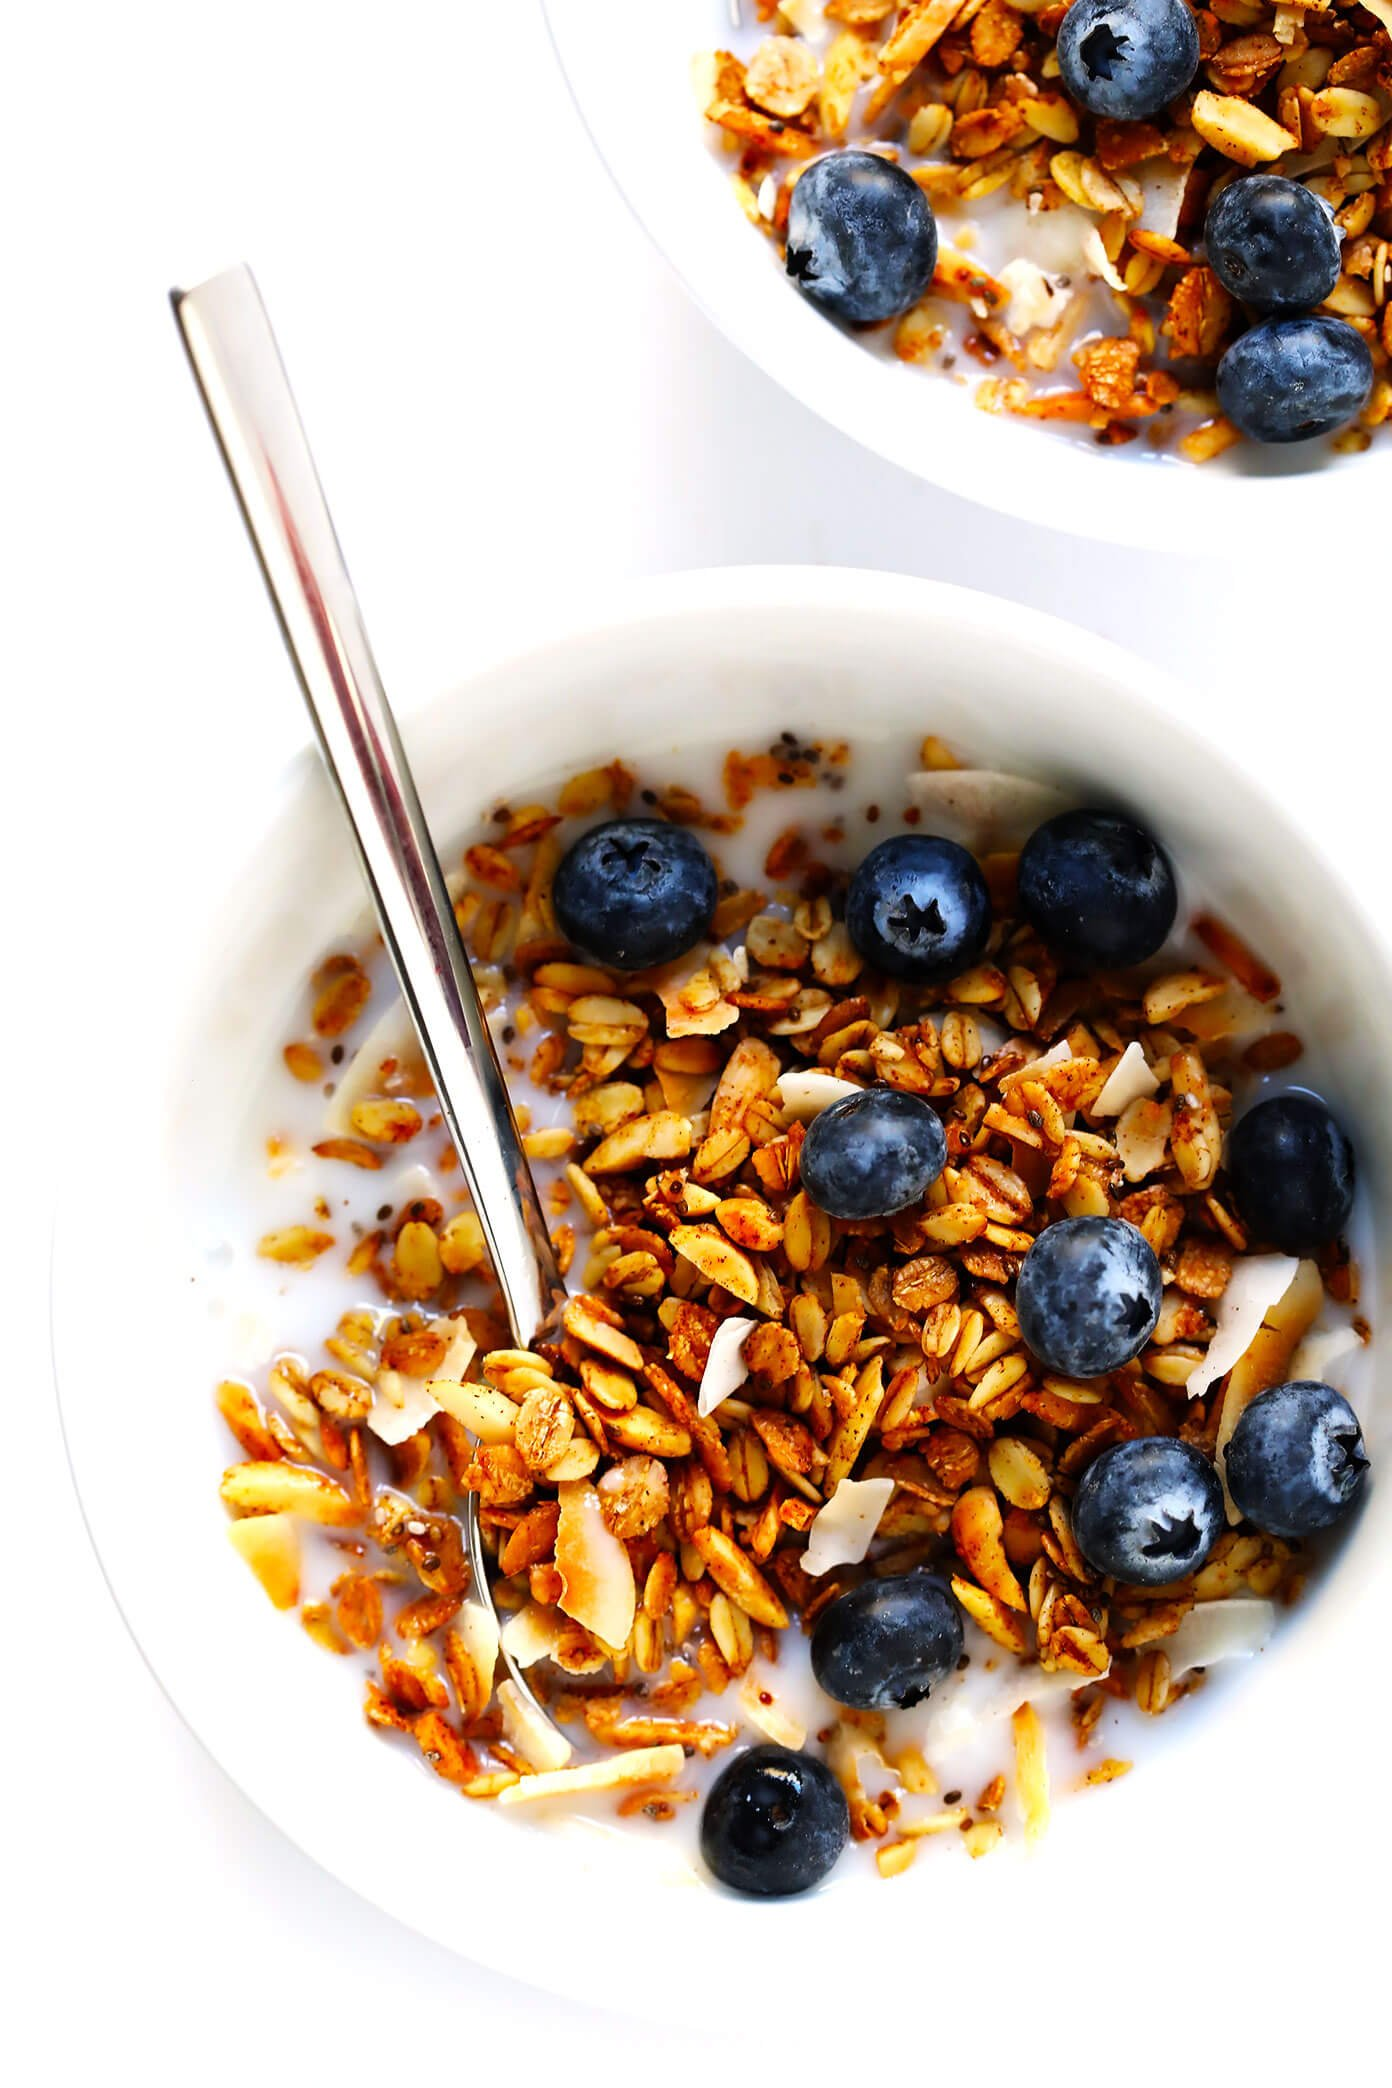 Healthy Granola Recipe with Almond Milk and Blueberries